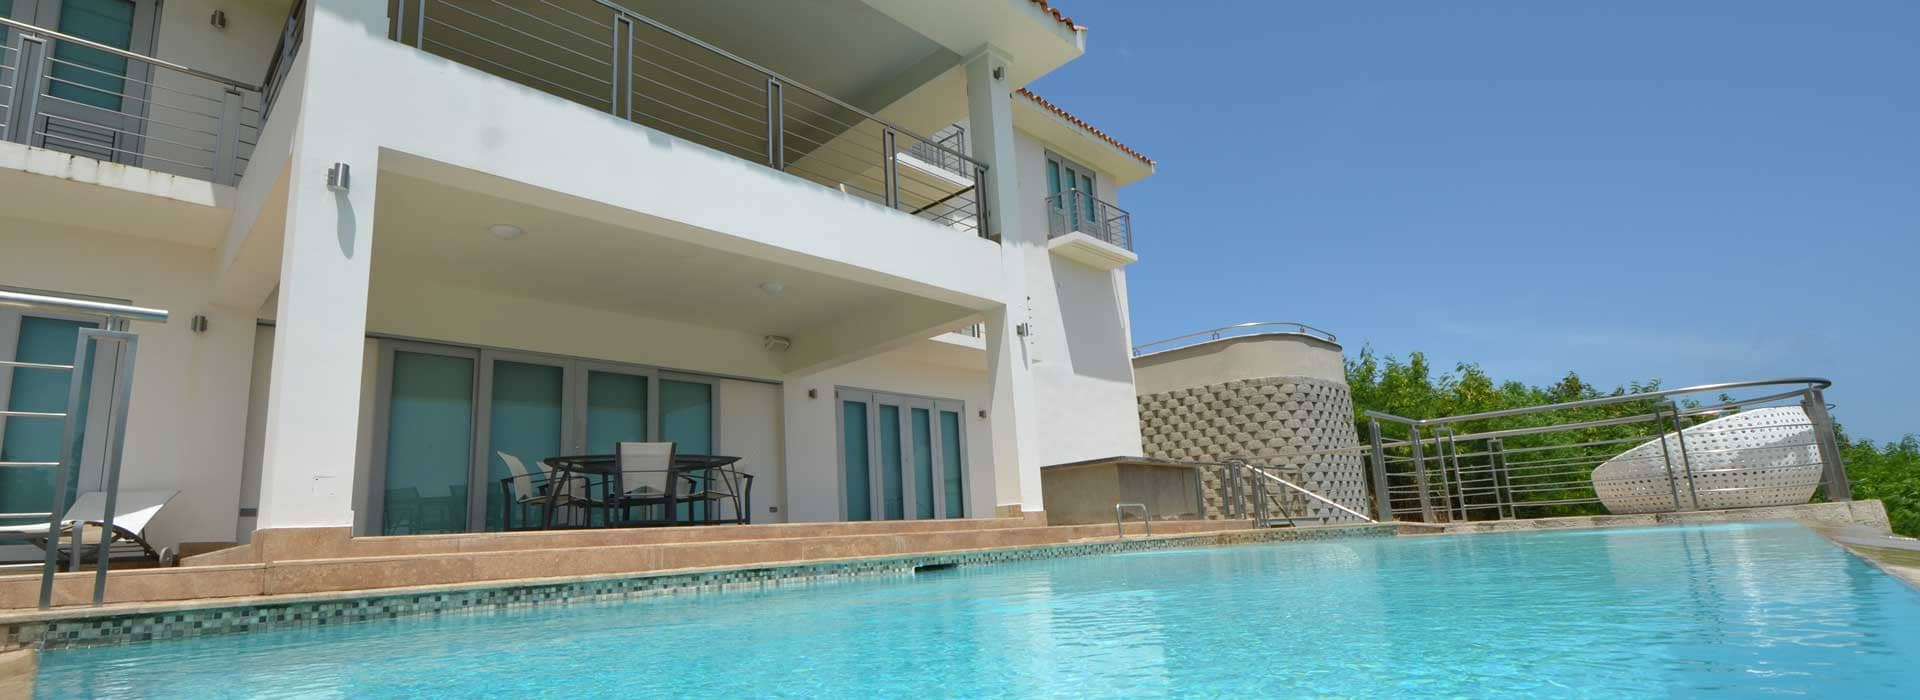 Captivating Luxury Villa Rentals | Puerto Rico | Palmas Del Mar